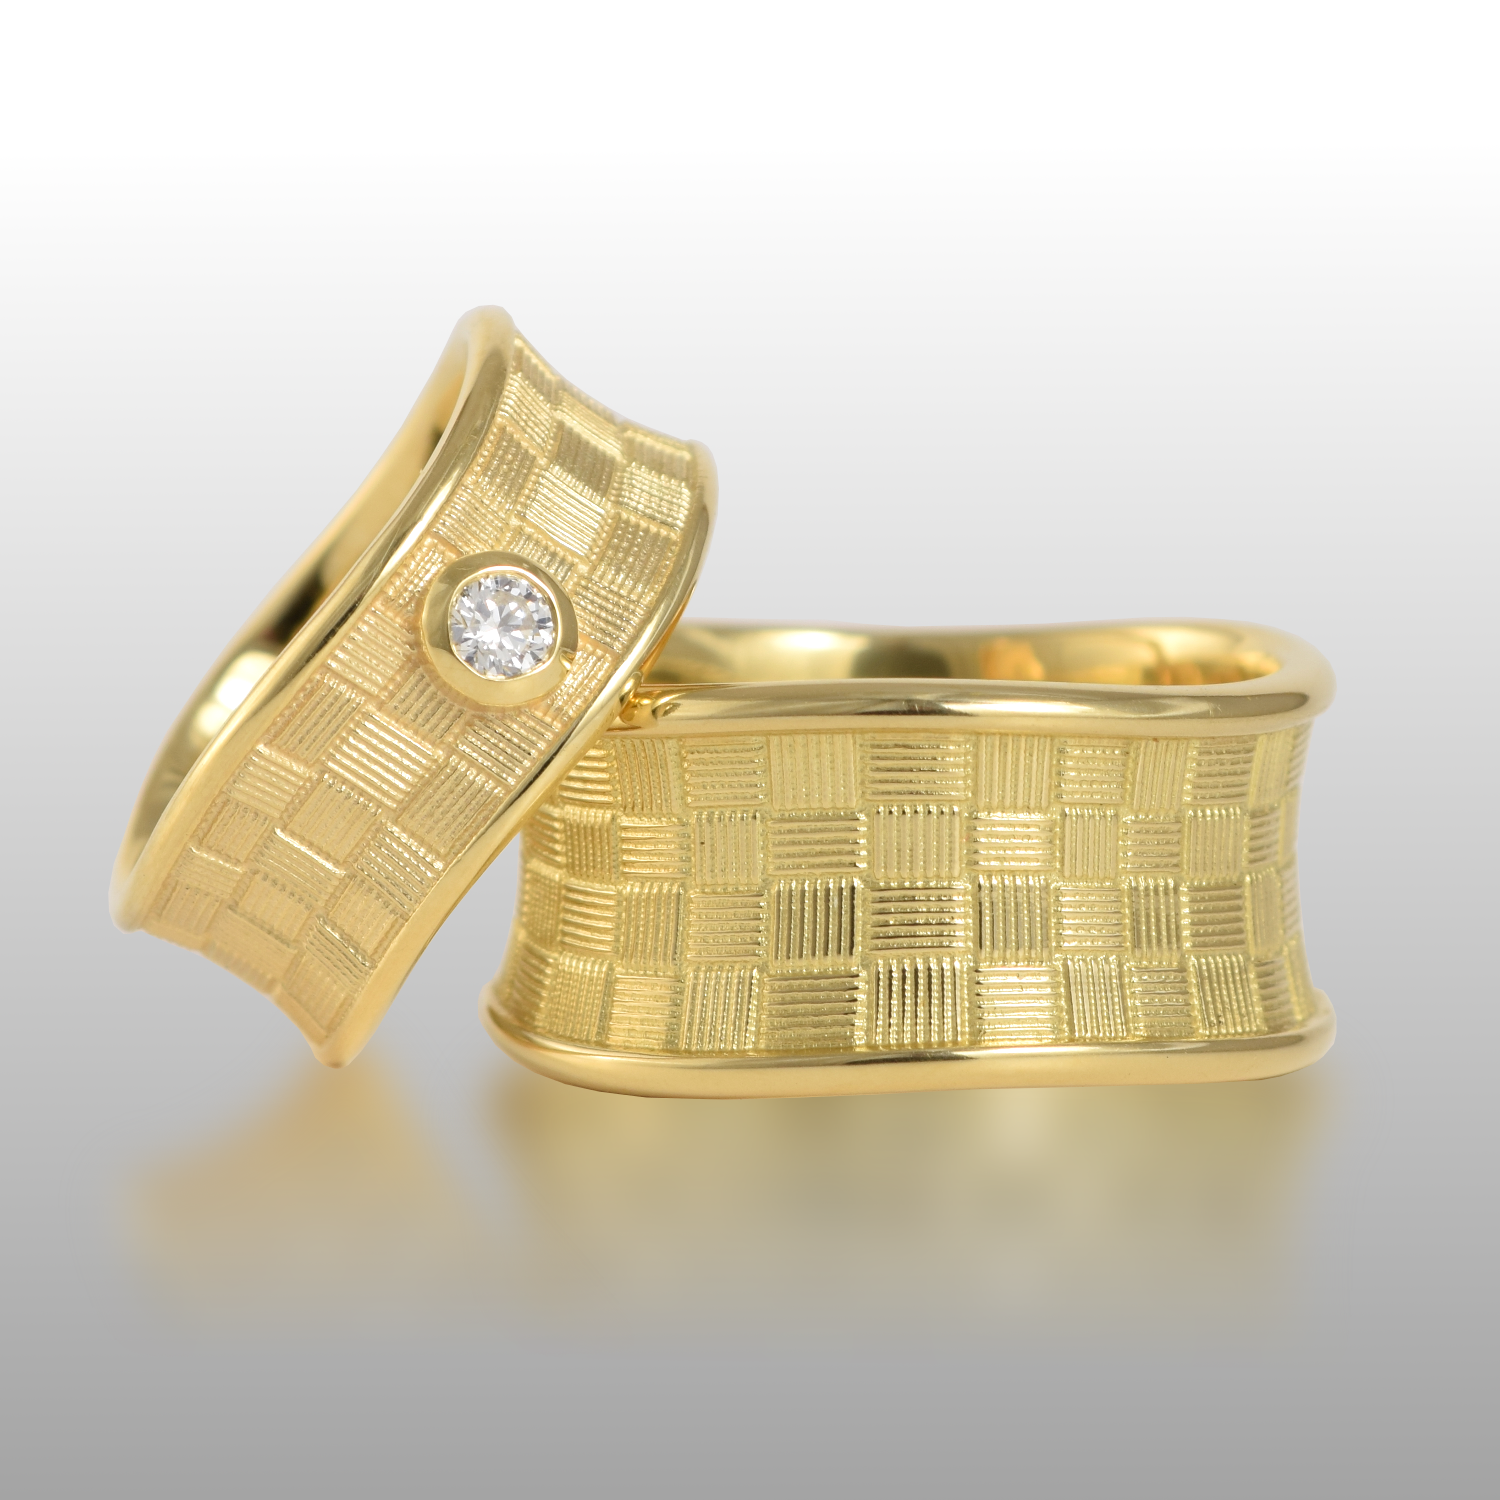 Wedding Band Set 'Lauhala' -His and Hers- with 18k Textured Gold and 3mm Diamond by Pratima Design Fine Art Jewelry